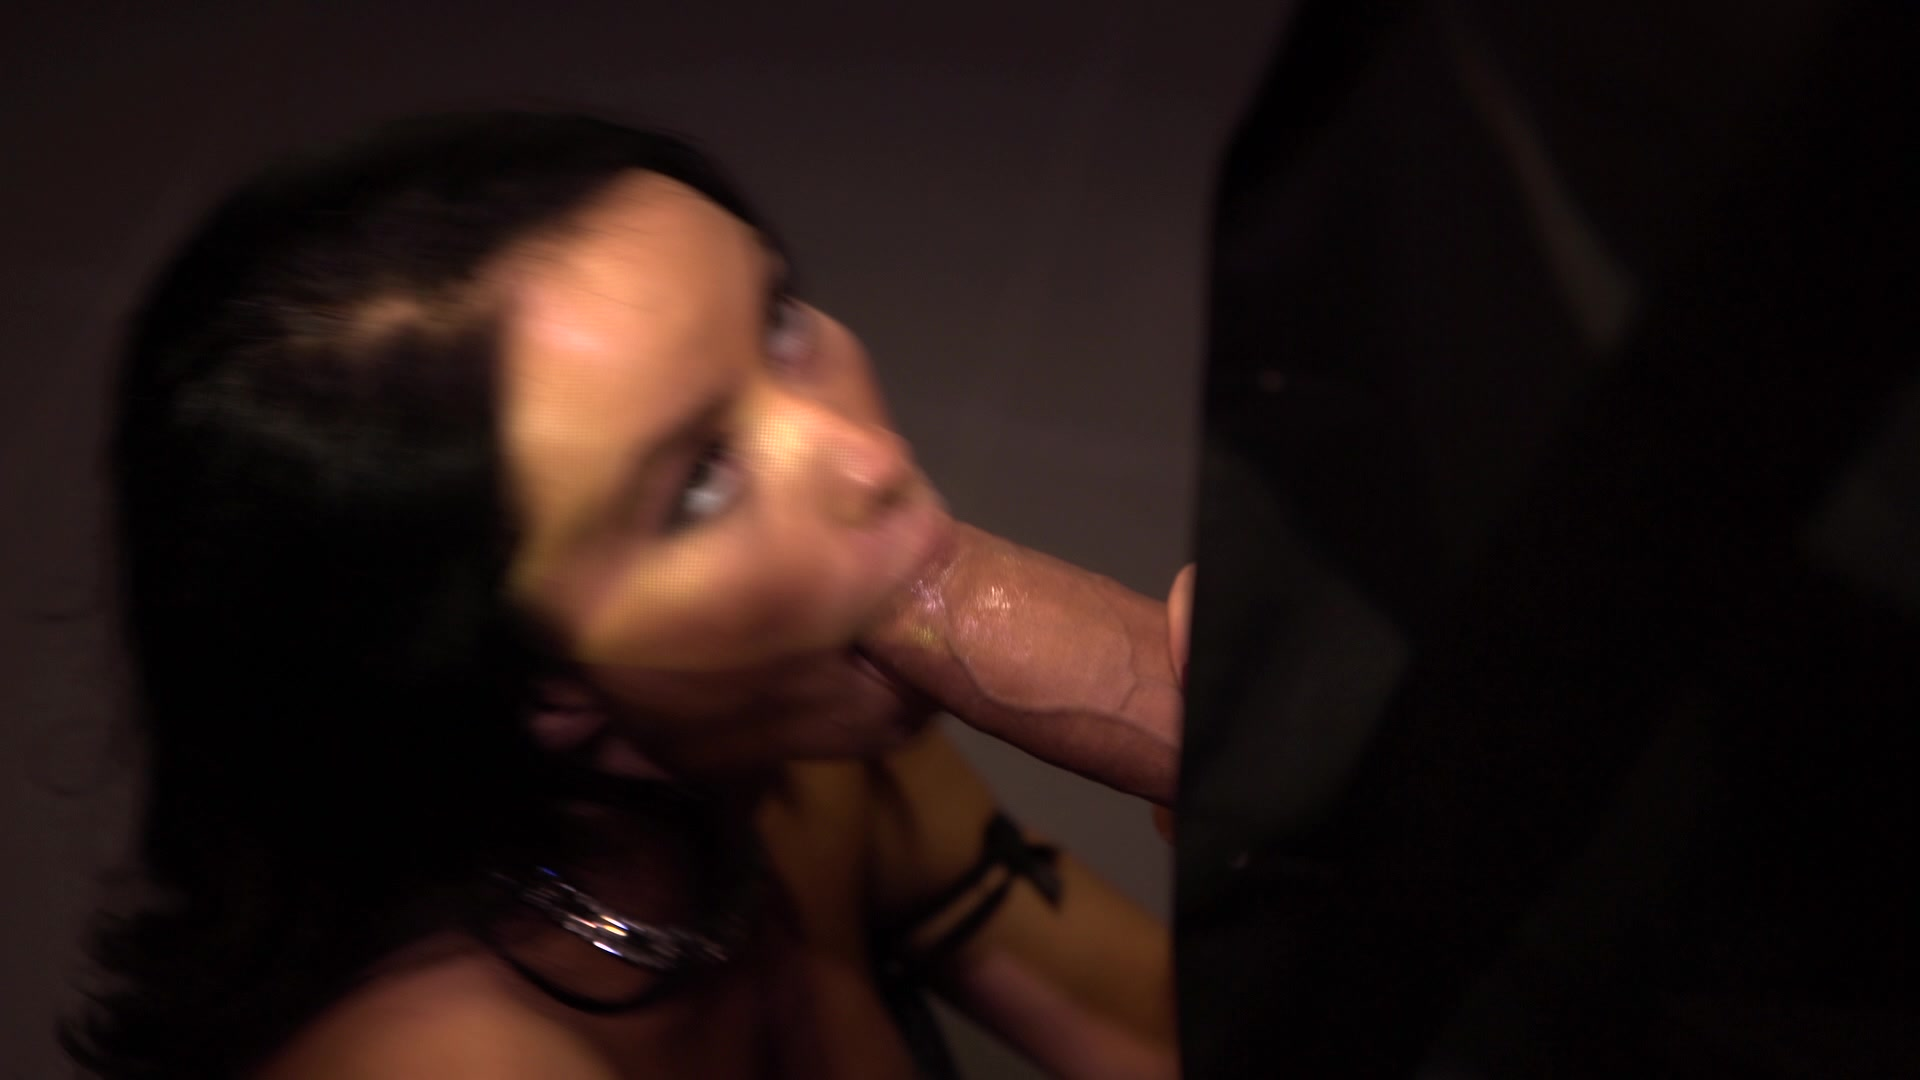 Scene with Megan Rain - image 13 out of 20